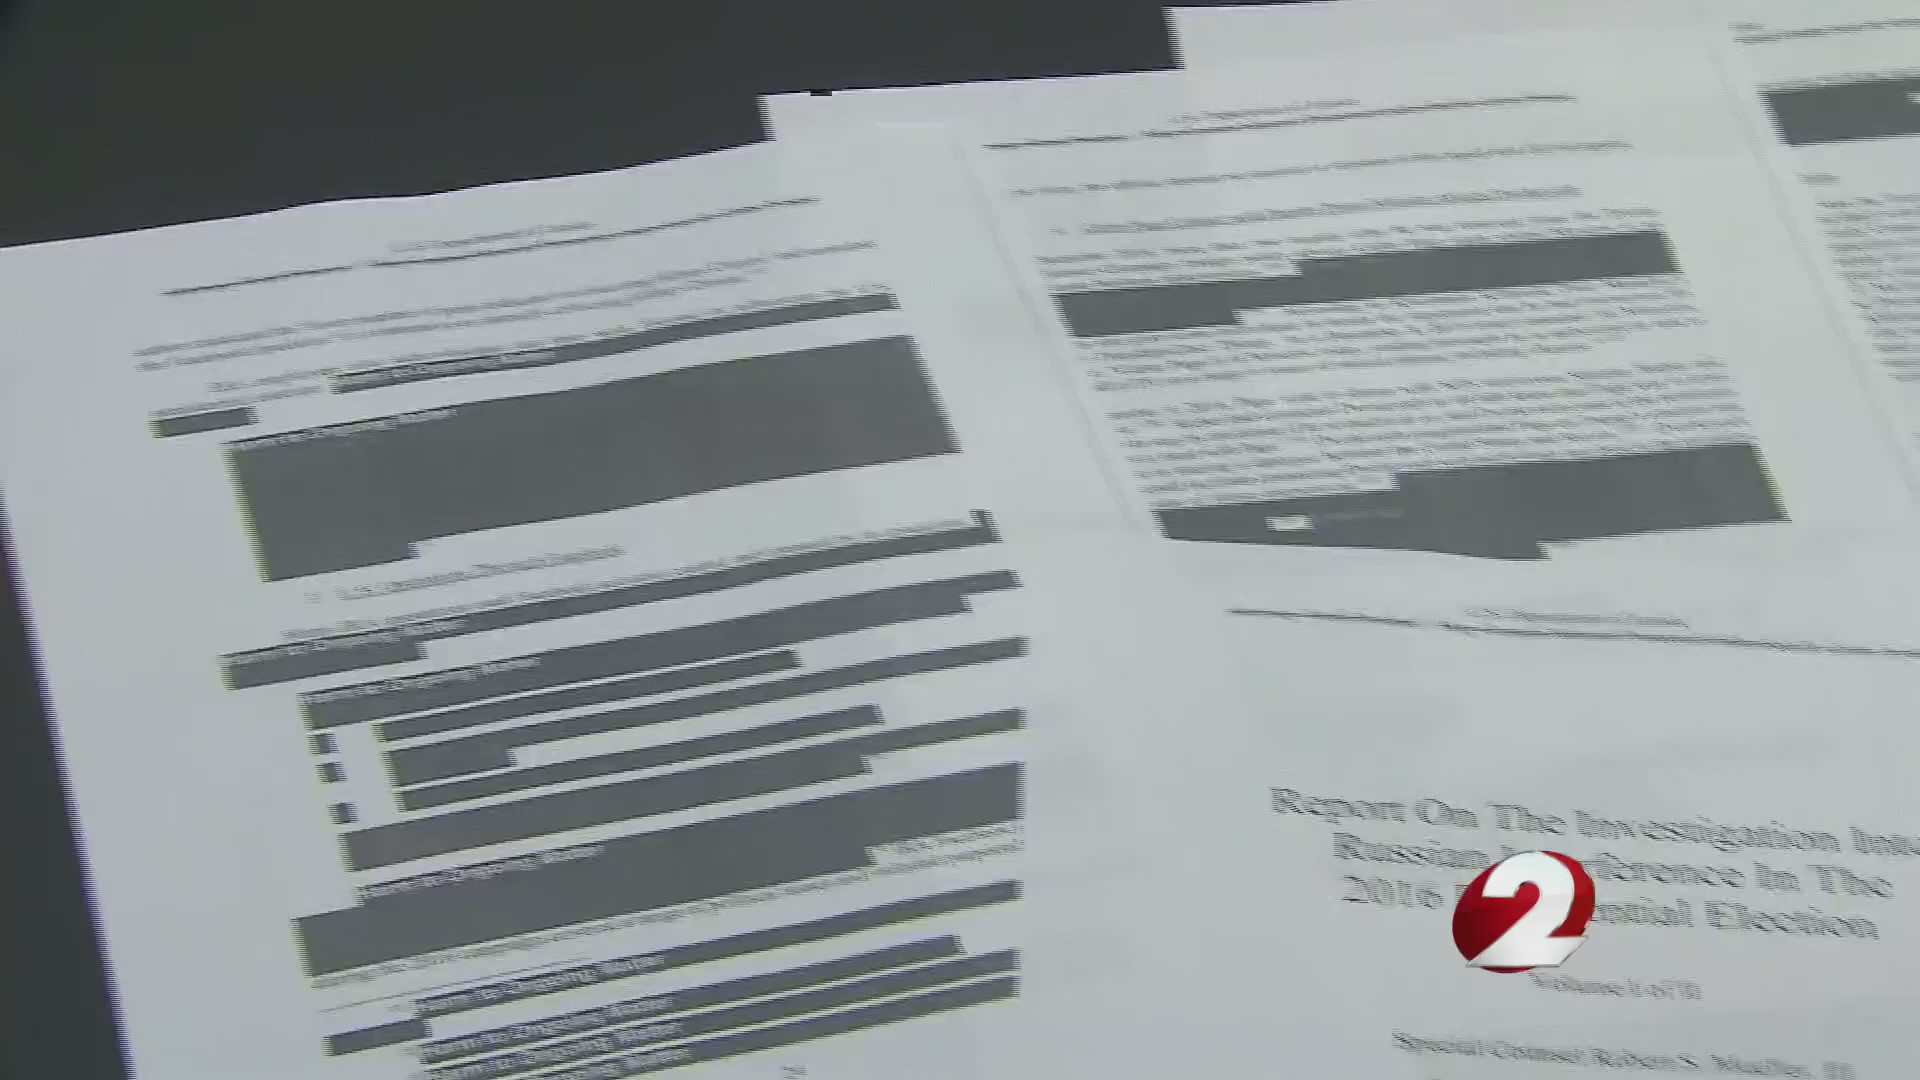 UD Law Professor weighs in on redacted report